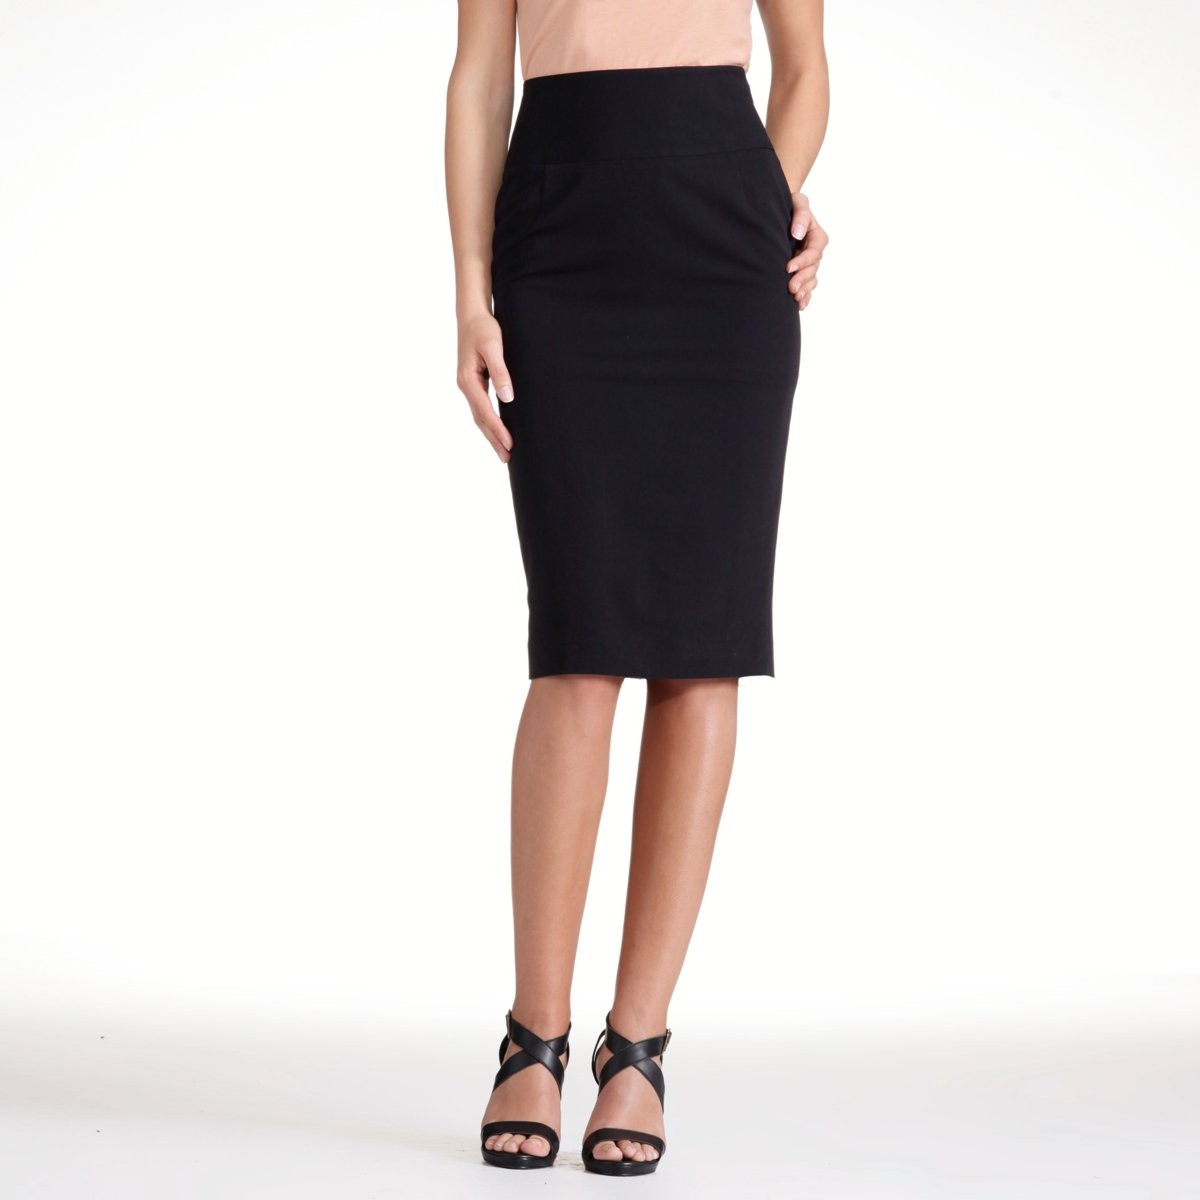 Amazing  Maternity Wear  Maternity Skirts  Microfiber Black Maternity Skirt